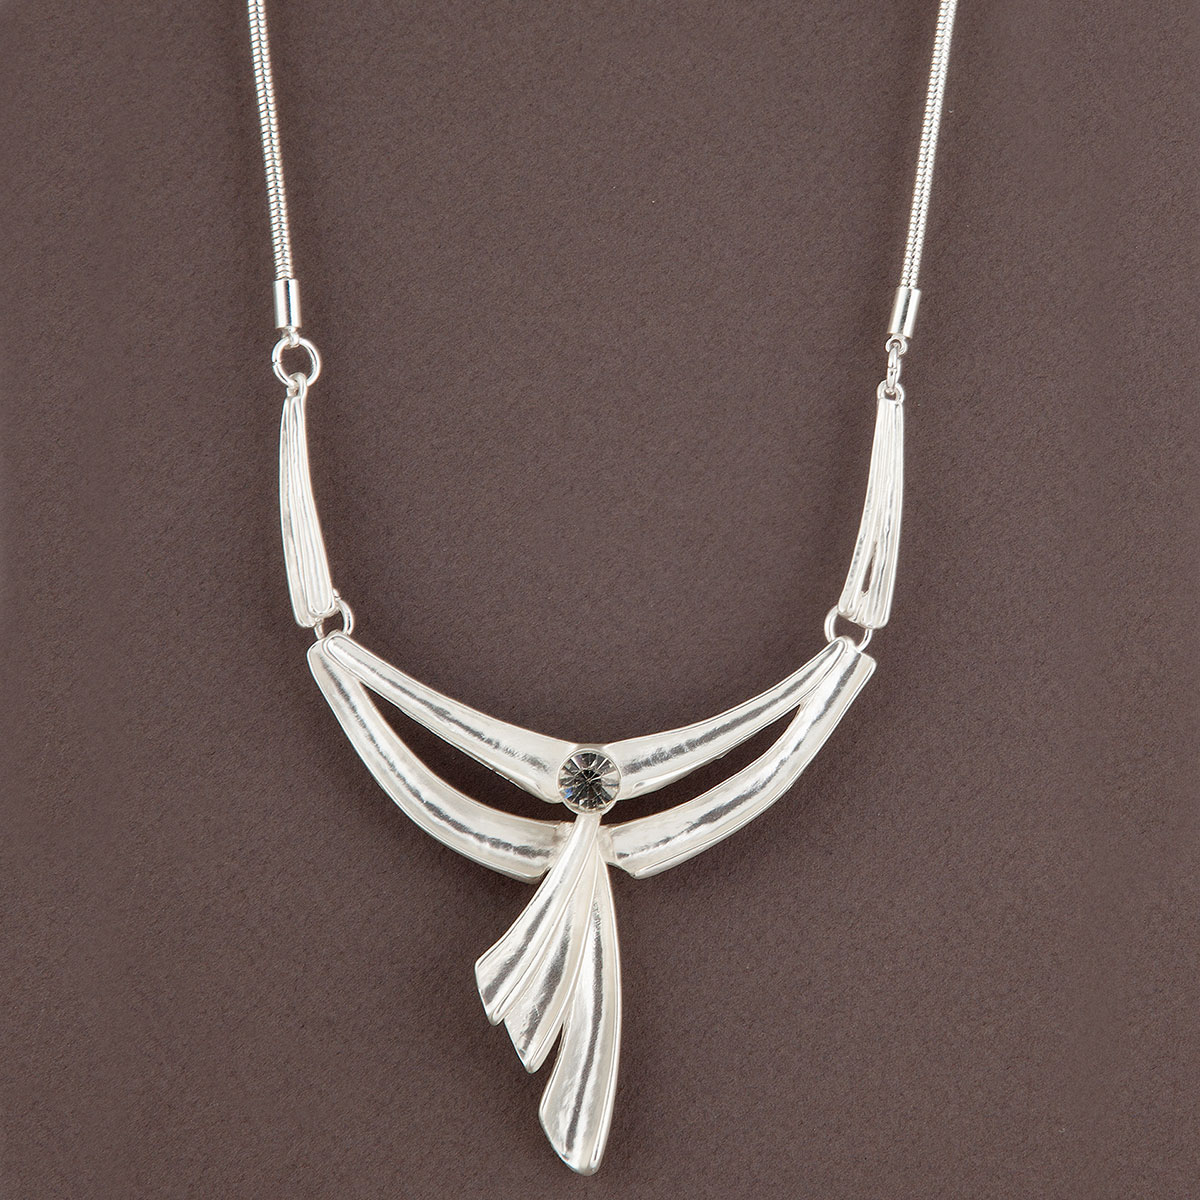 Satin Silver Drop Art Deco with Stone on Chain Necklace